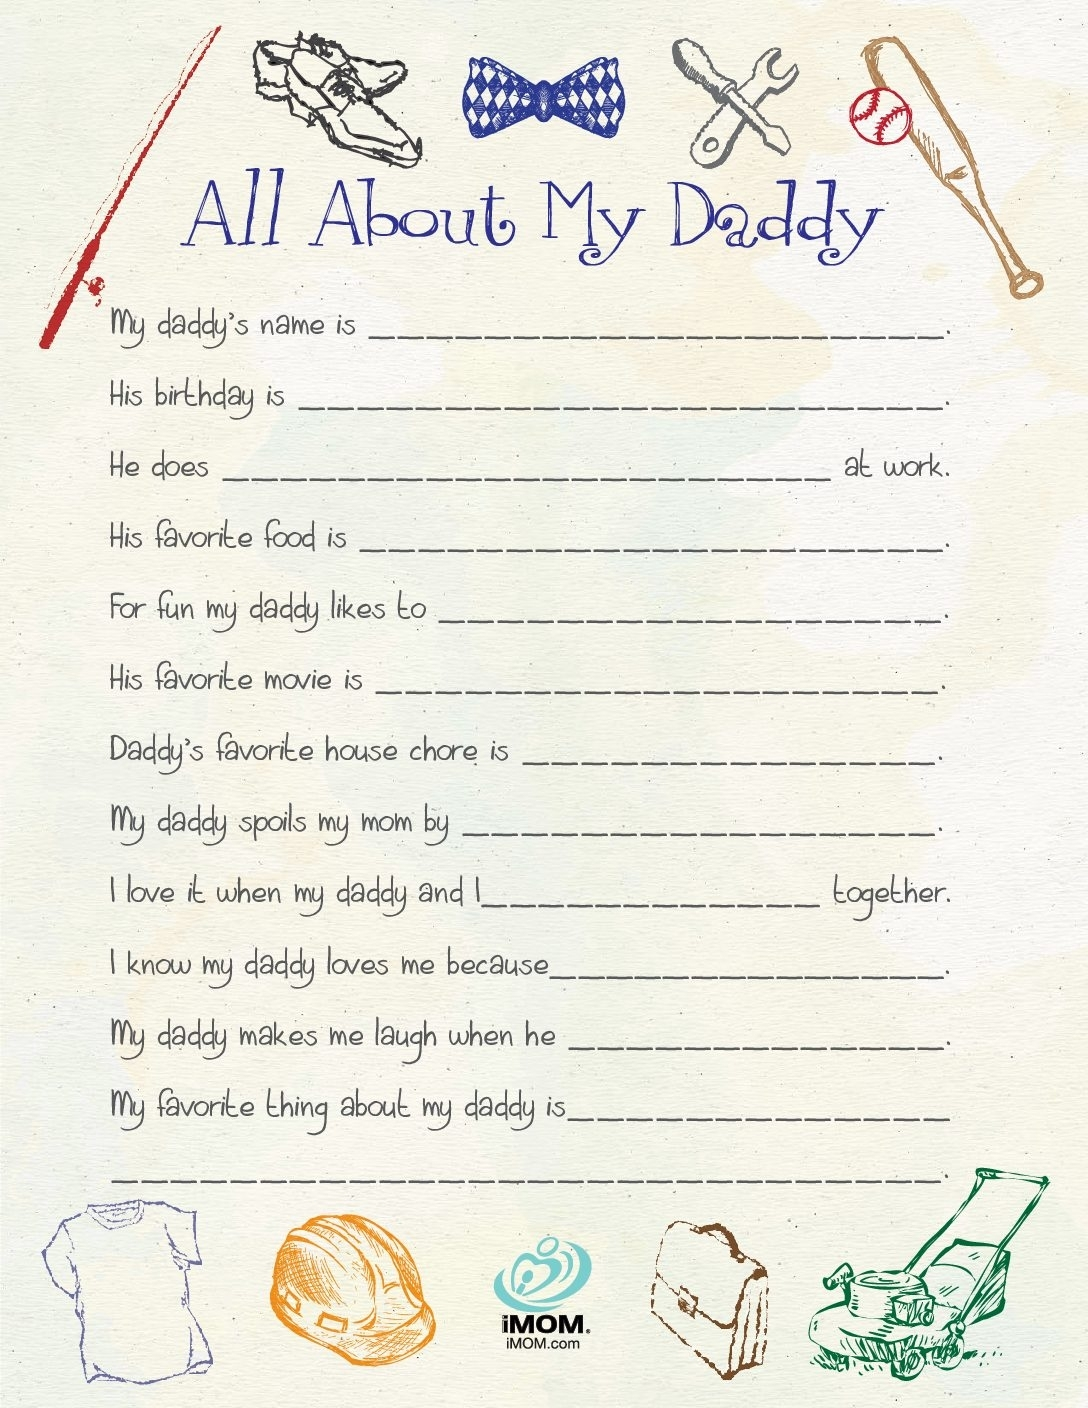 All About My Daddy - Imom